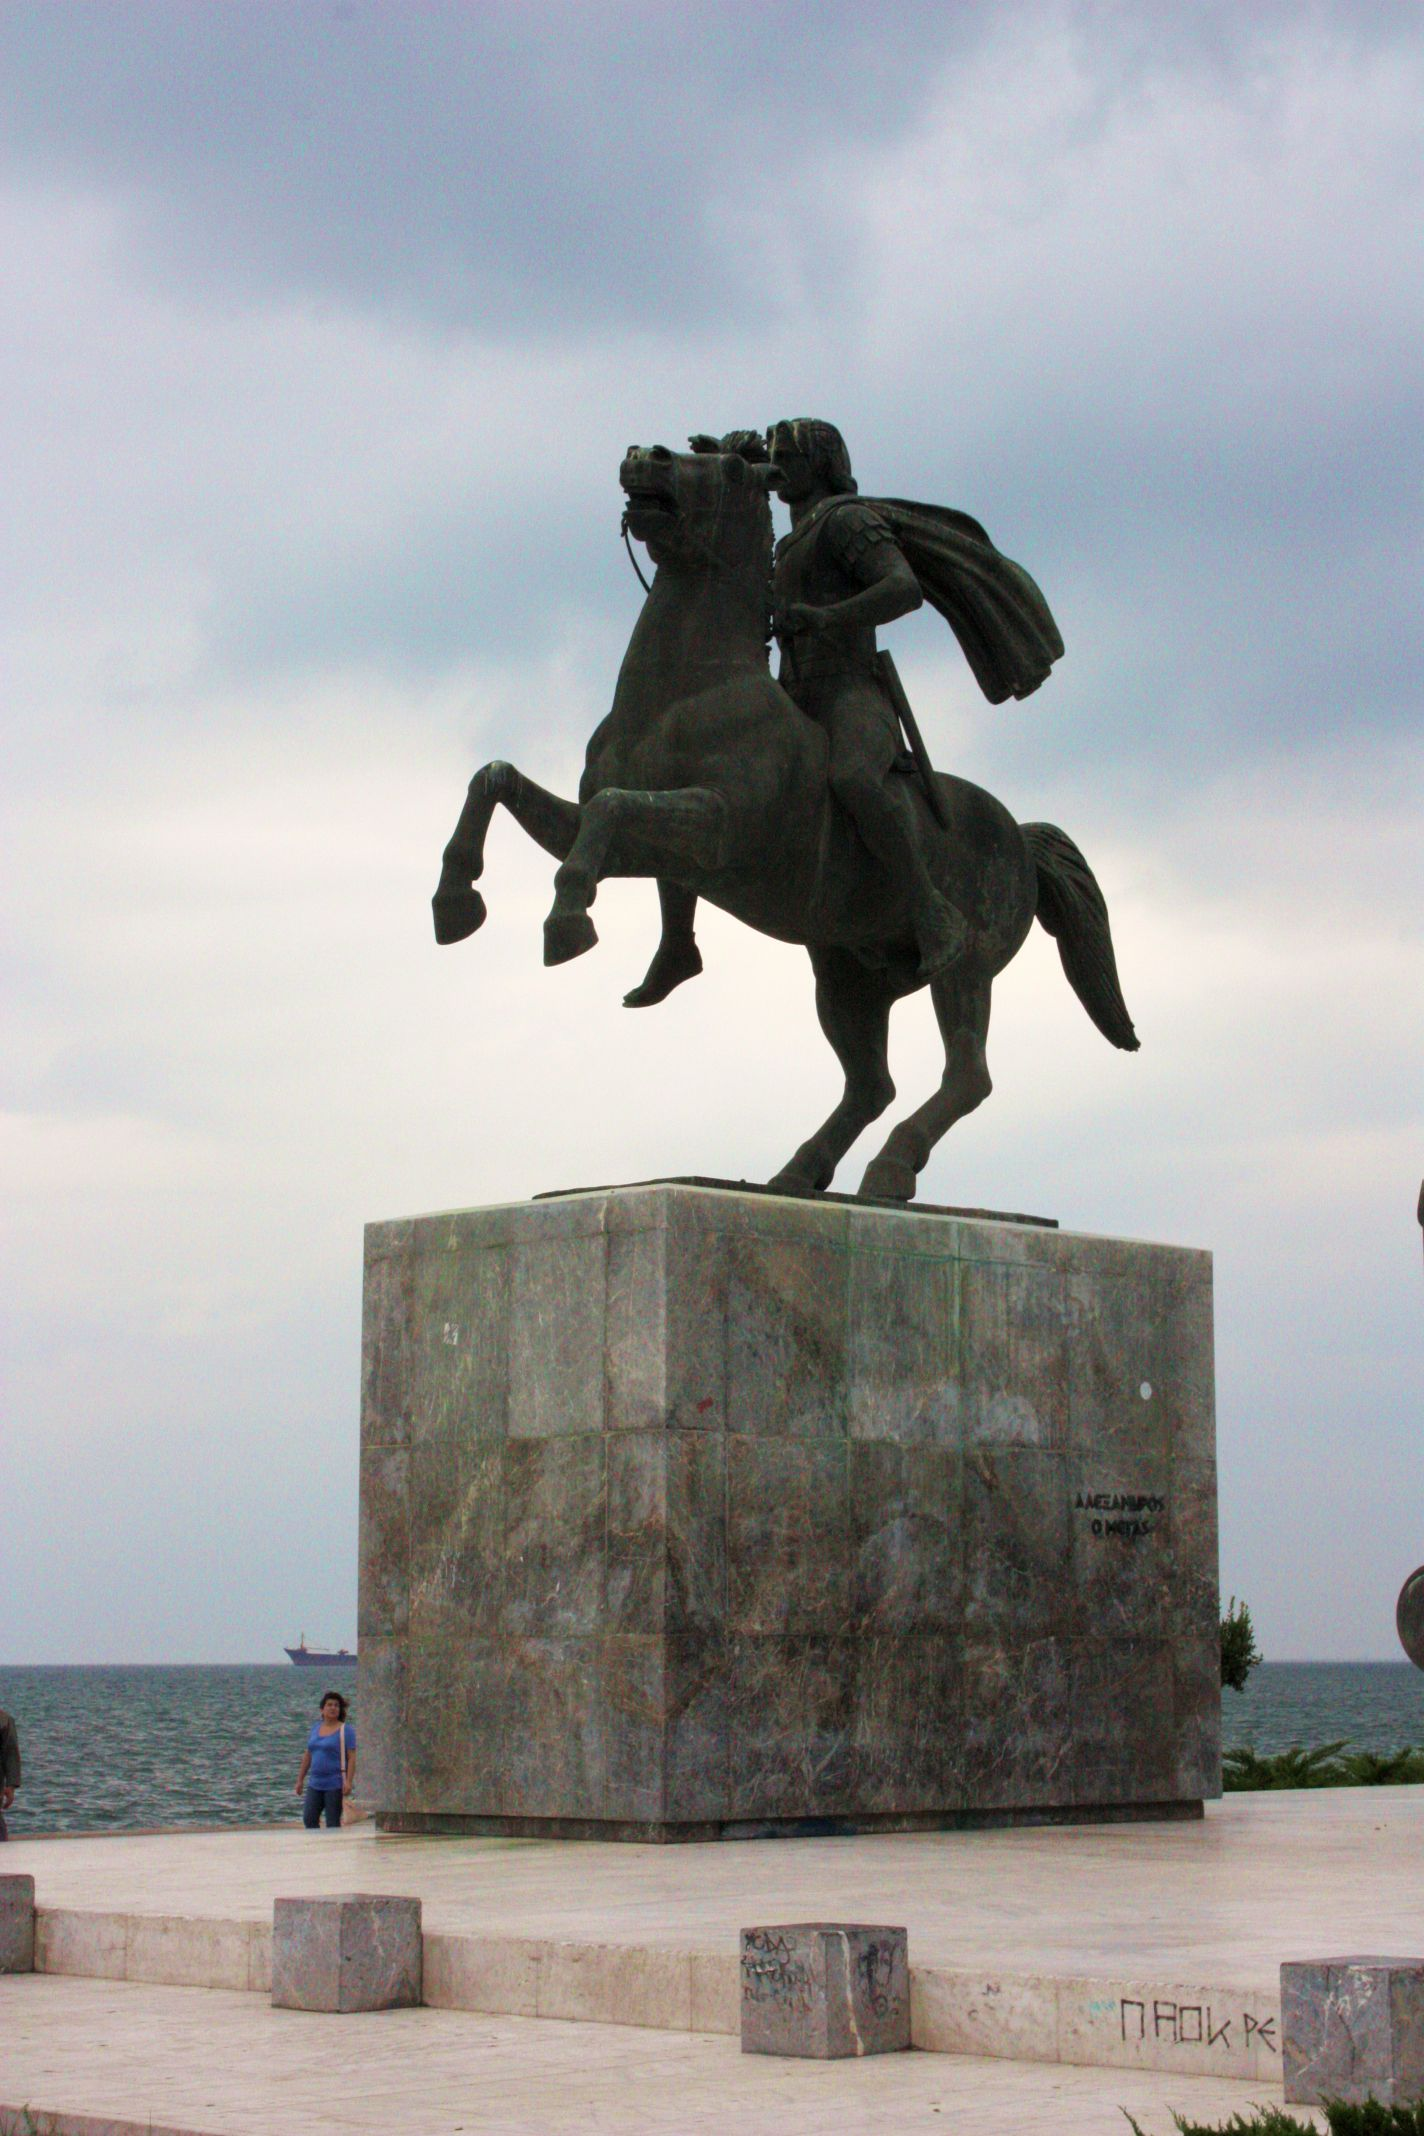 Sculpture of Alexander the Great in Thessaloniki.